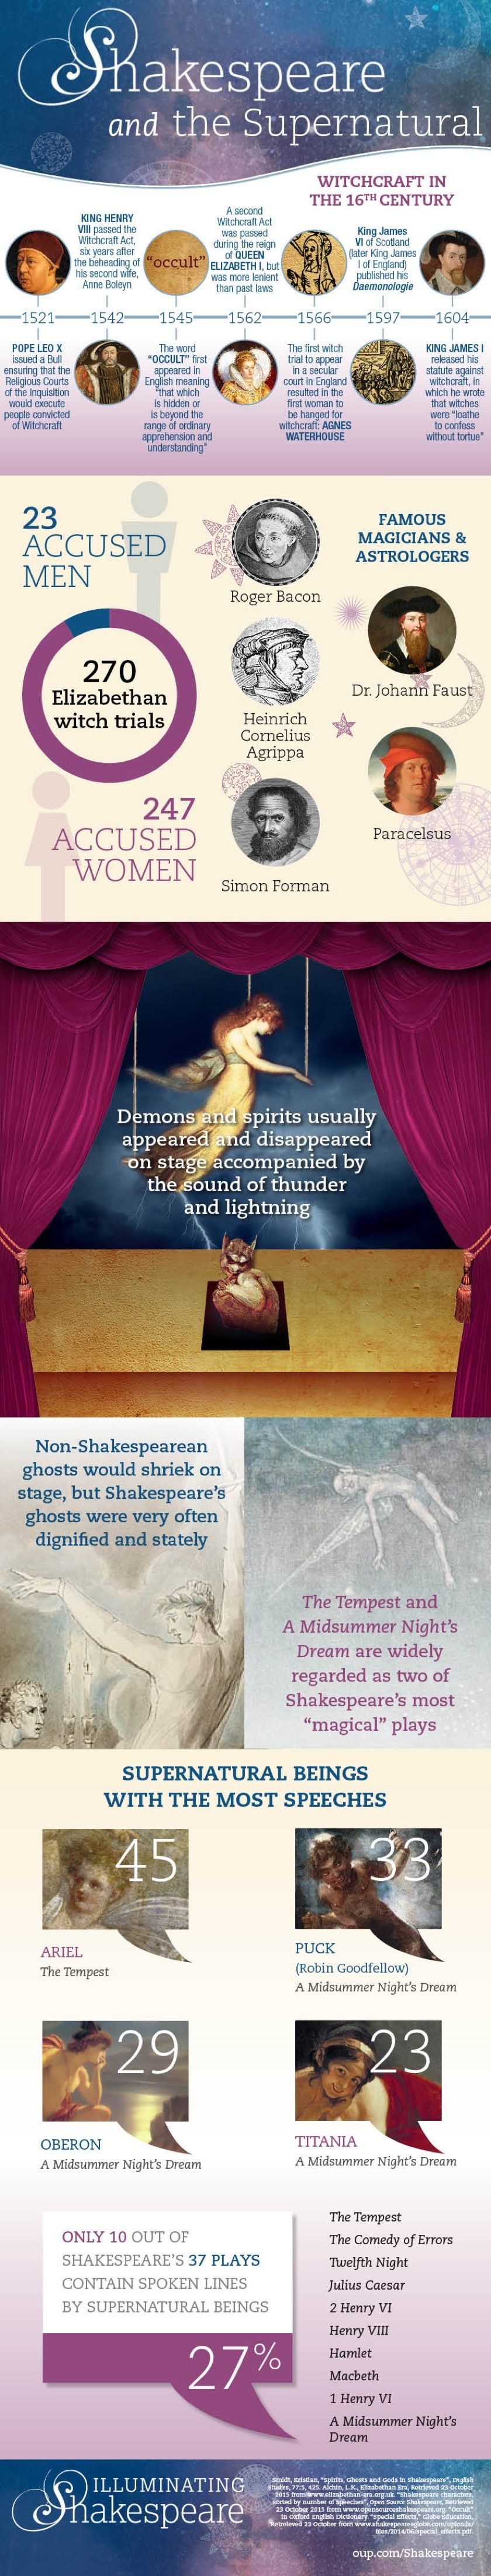 Shakespeare and the supernatural #infographic